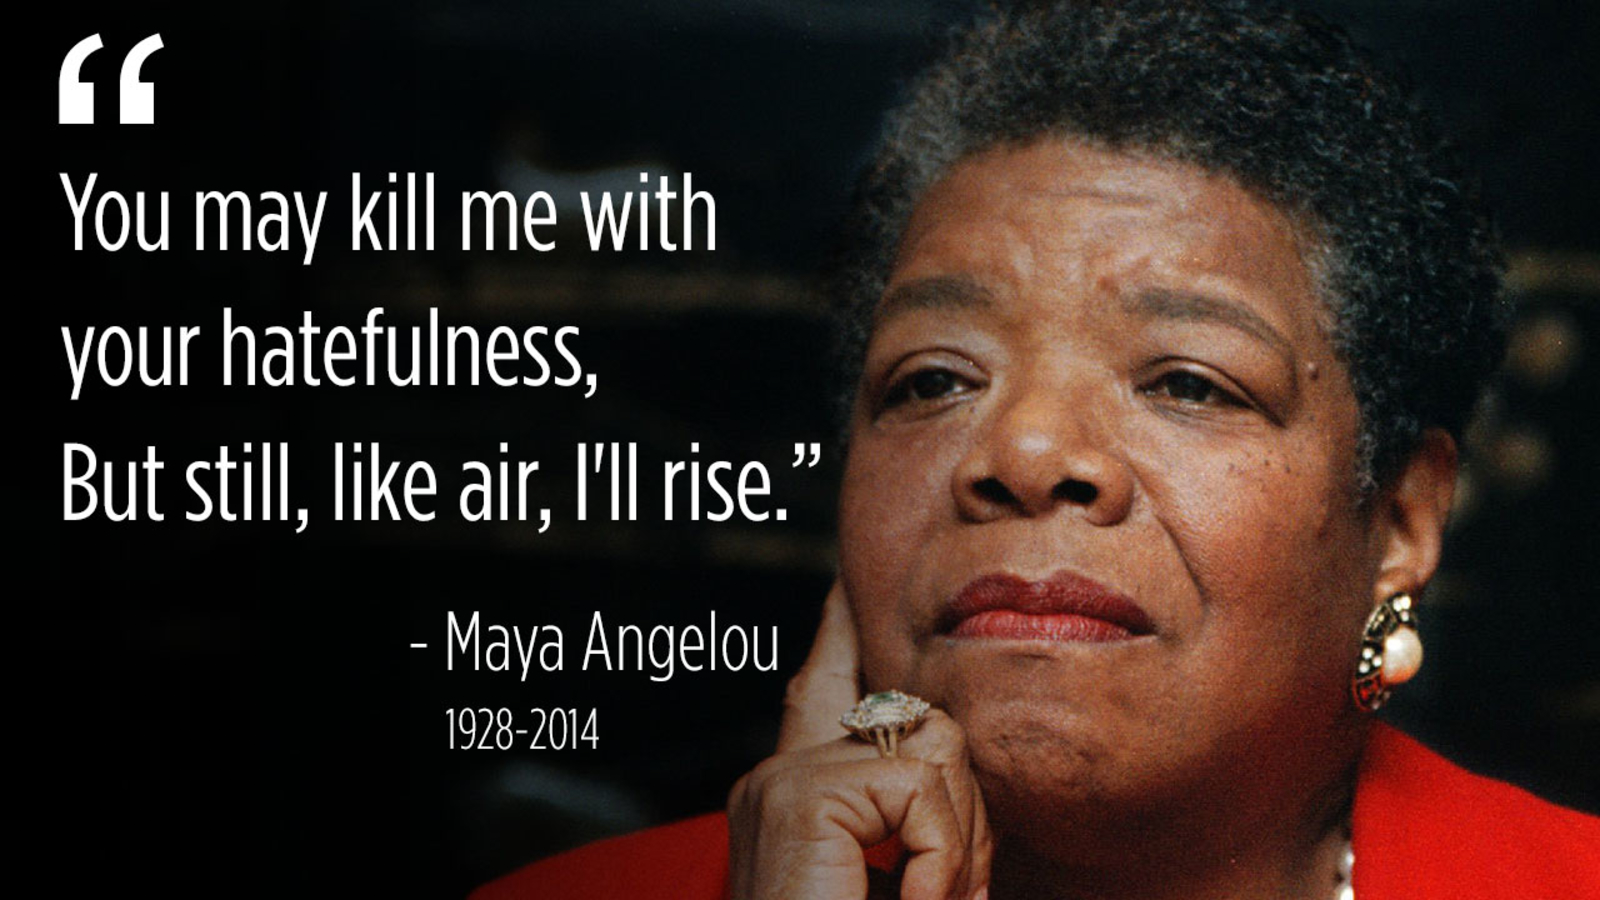 Maya Angelou quotes: Inspiring words to mark anniversary of her